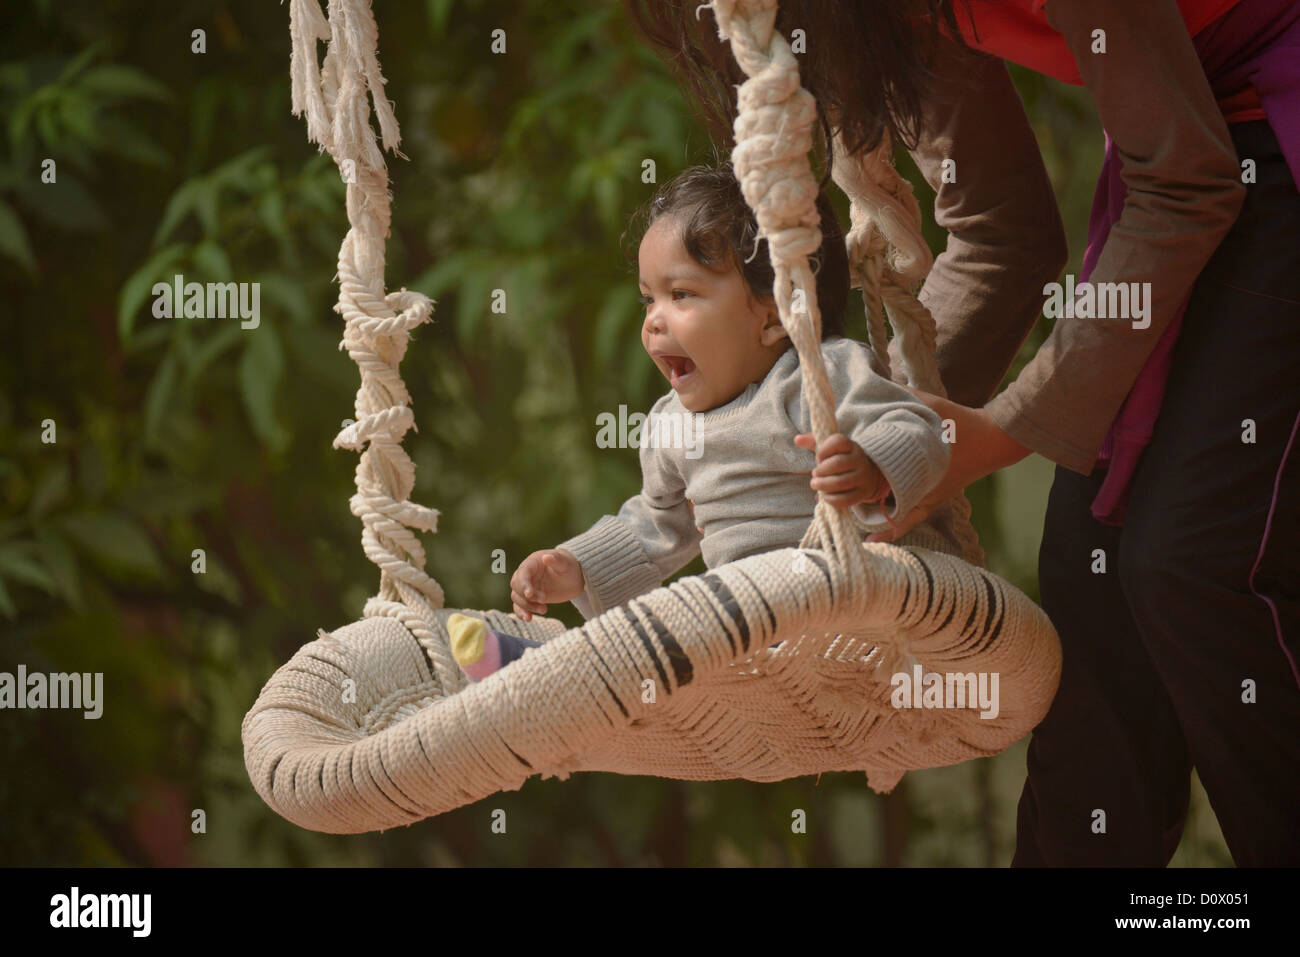 cute south asian (indian) baby girl playing on a swing stock photo